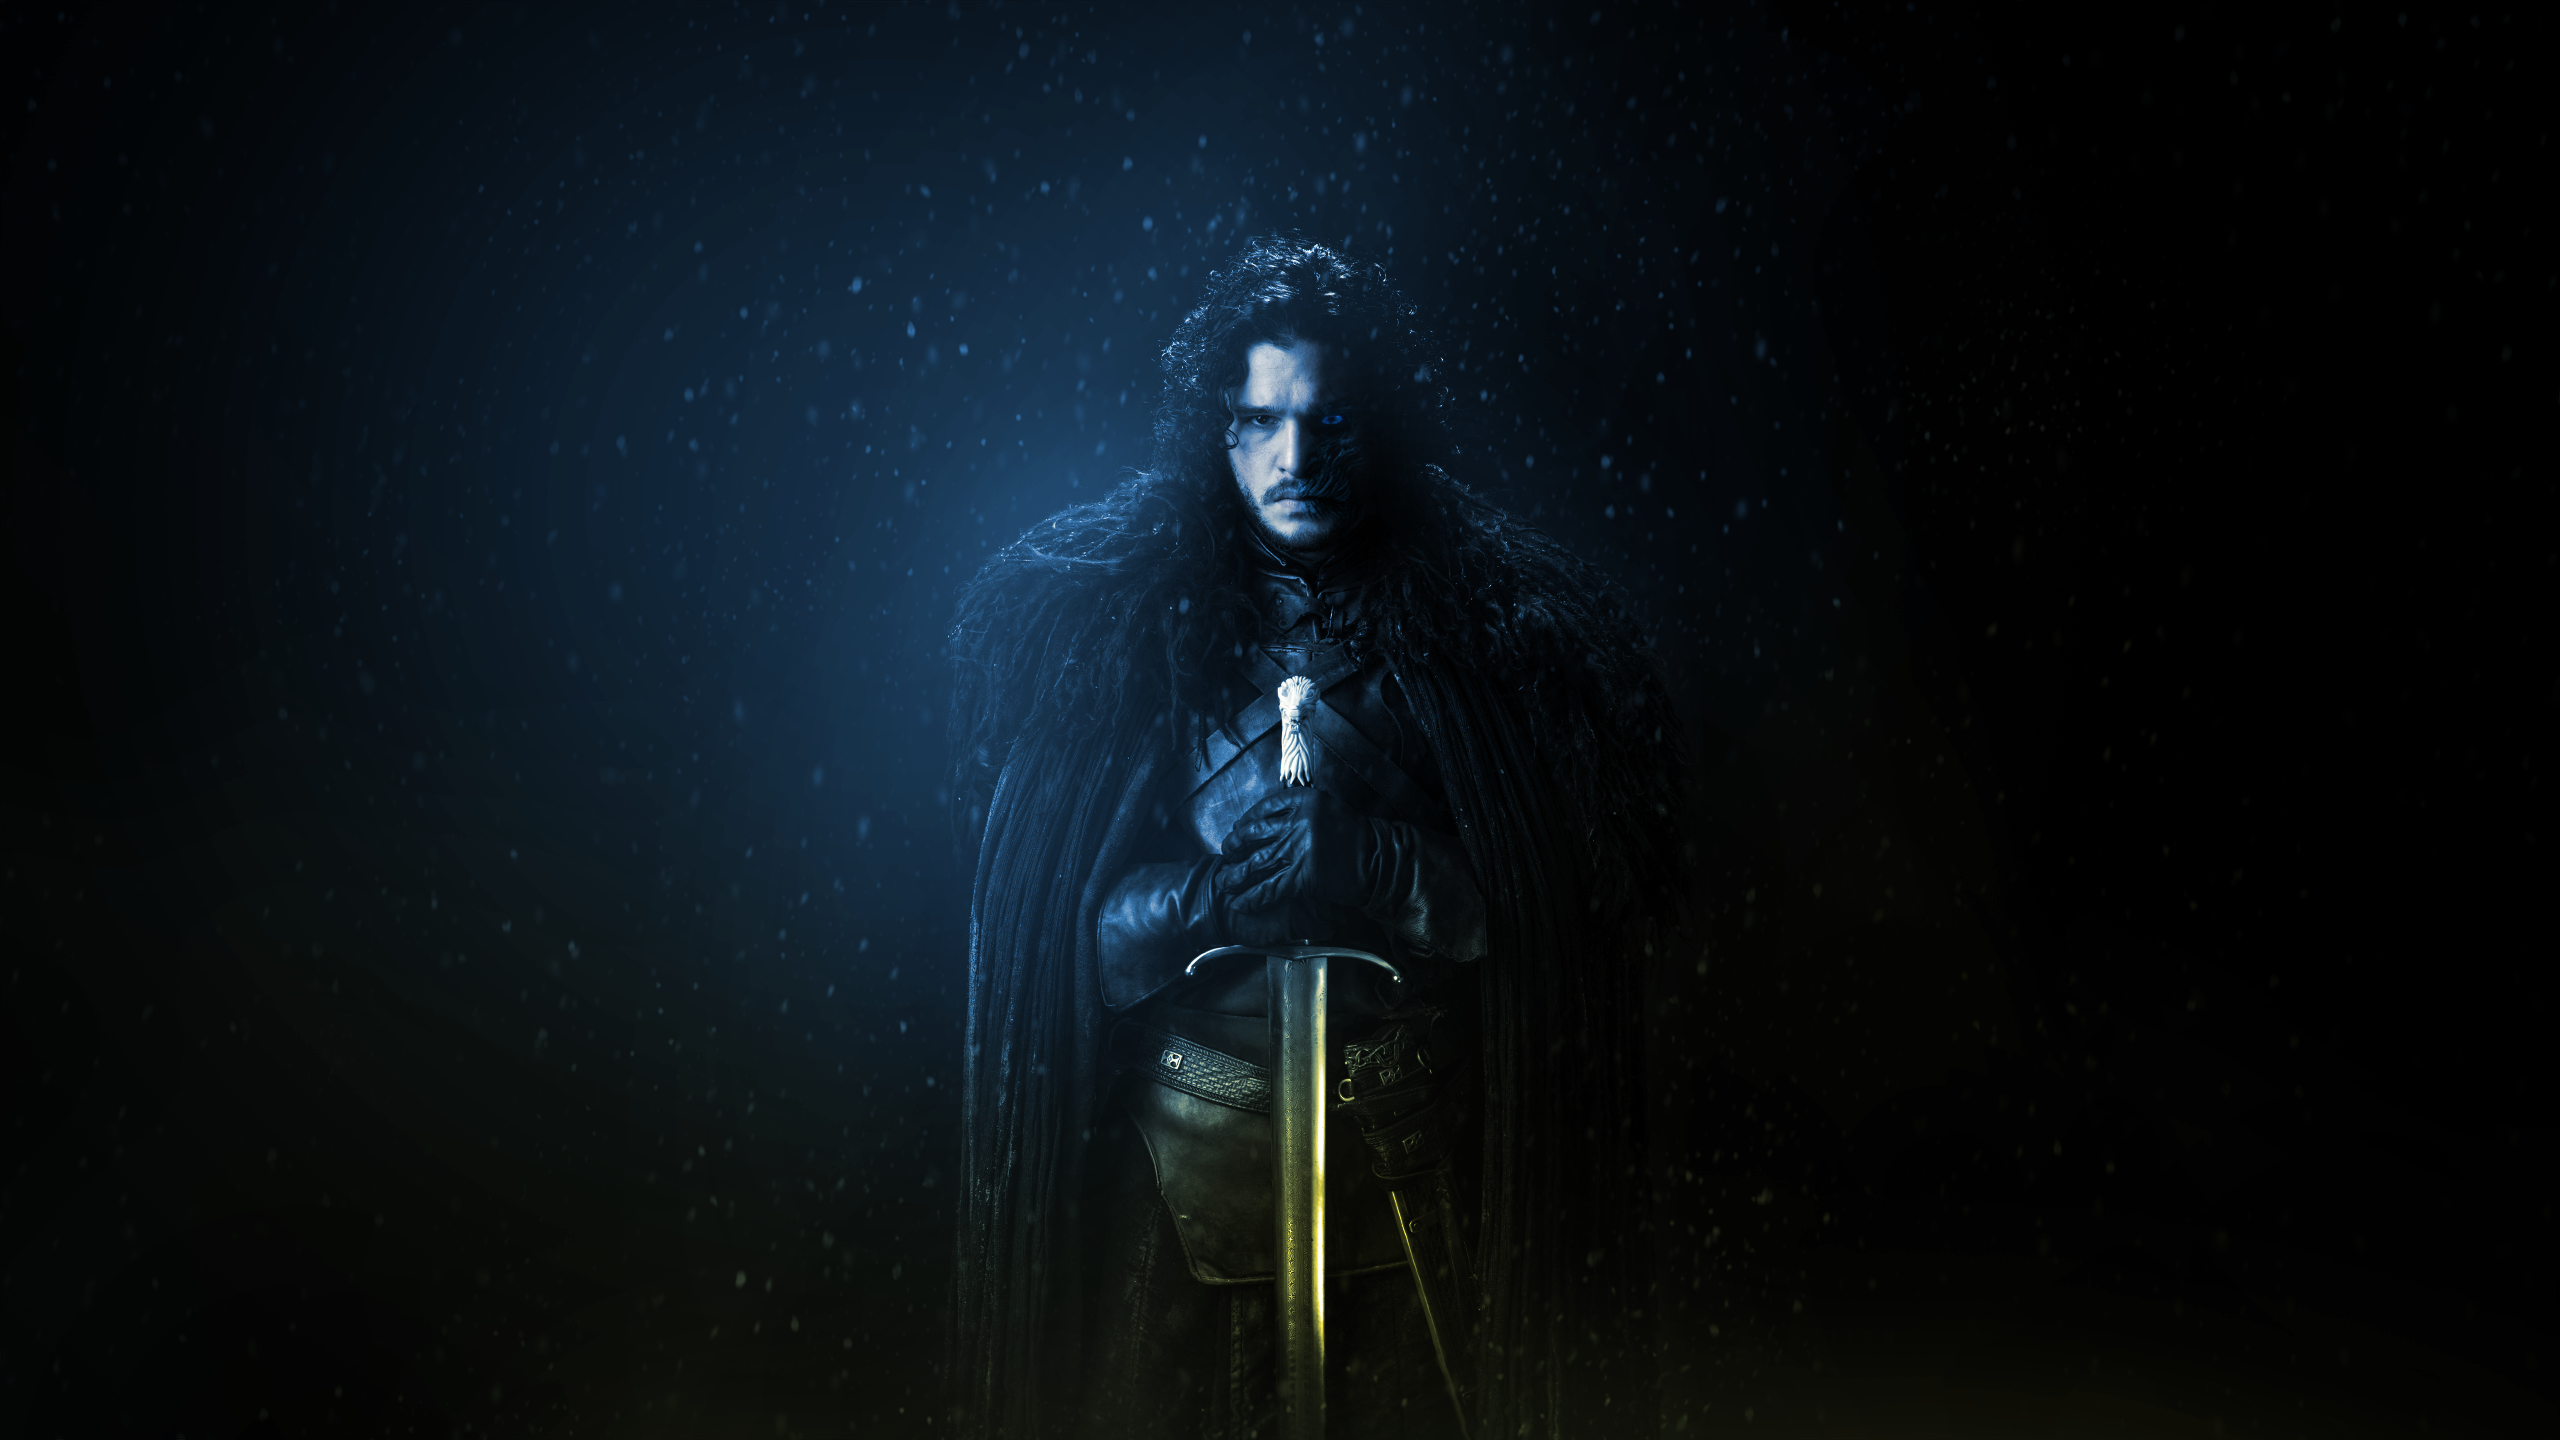 game of thrones full hd wallpaper and background image | 2560x1440